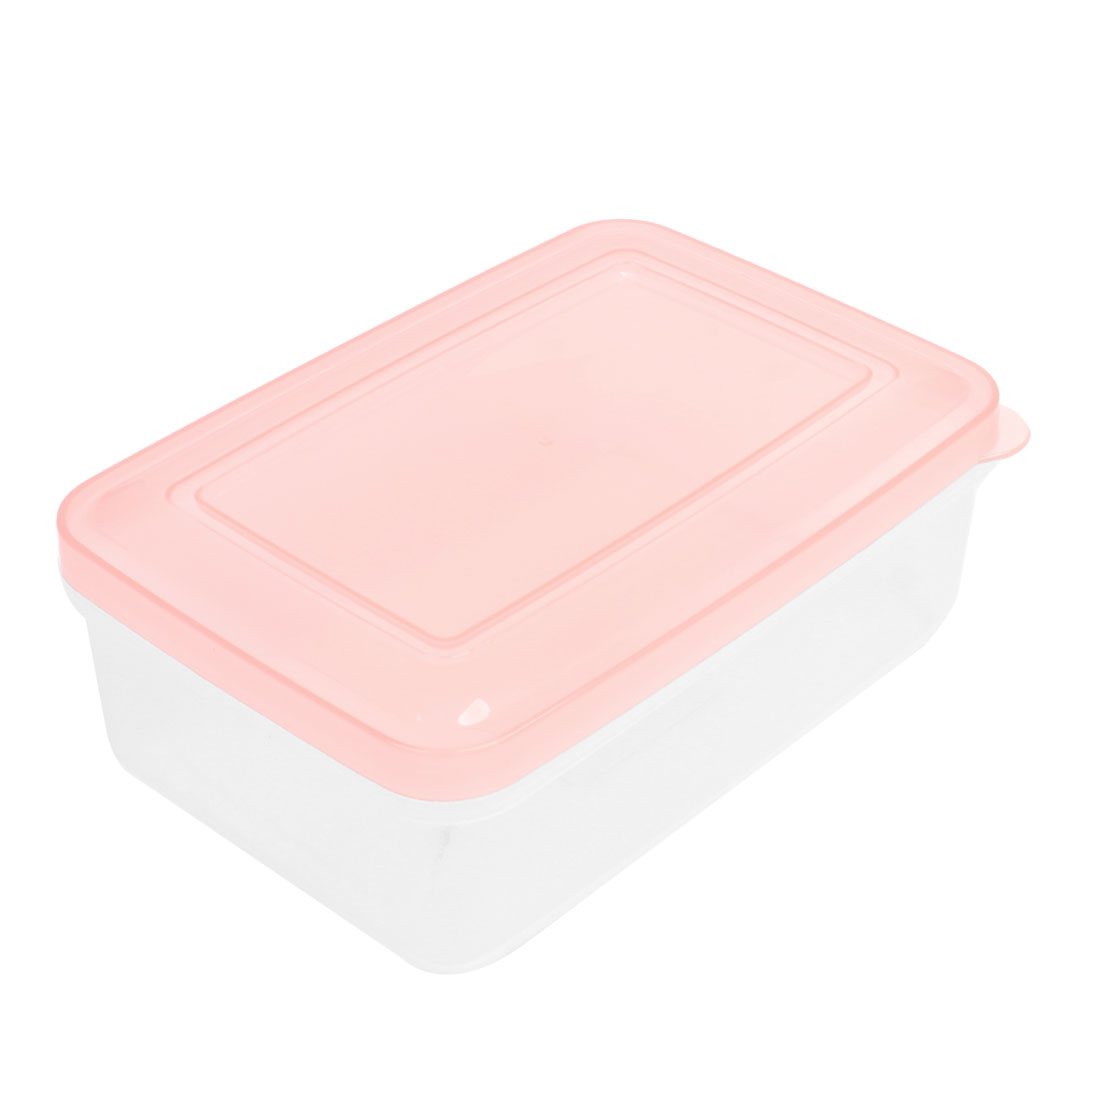 Peachpuff Clear Rectangle Airtight Food Container Crisper Kitchen Ware